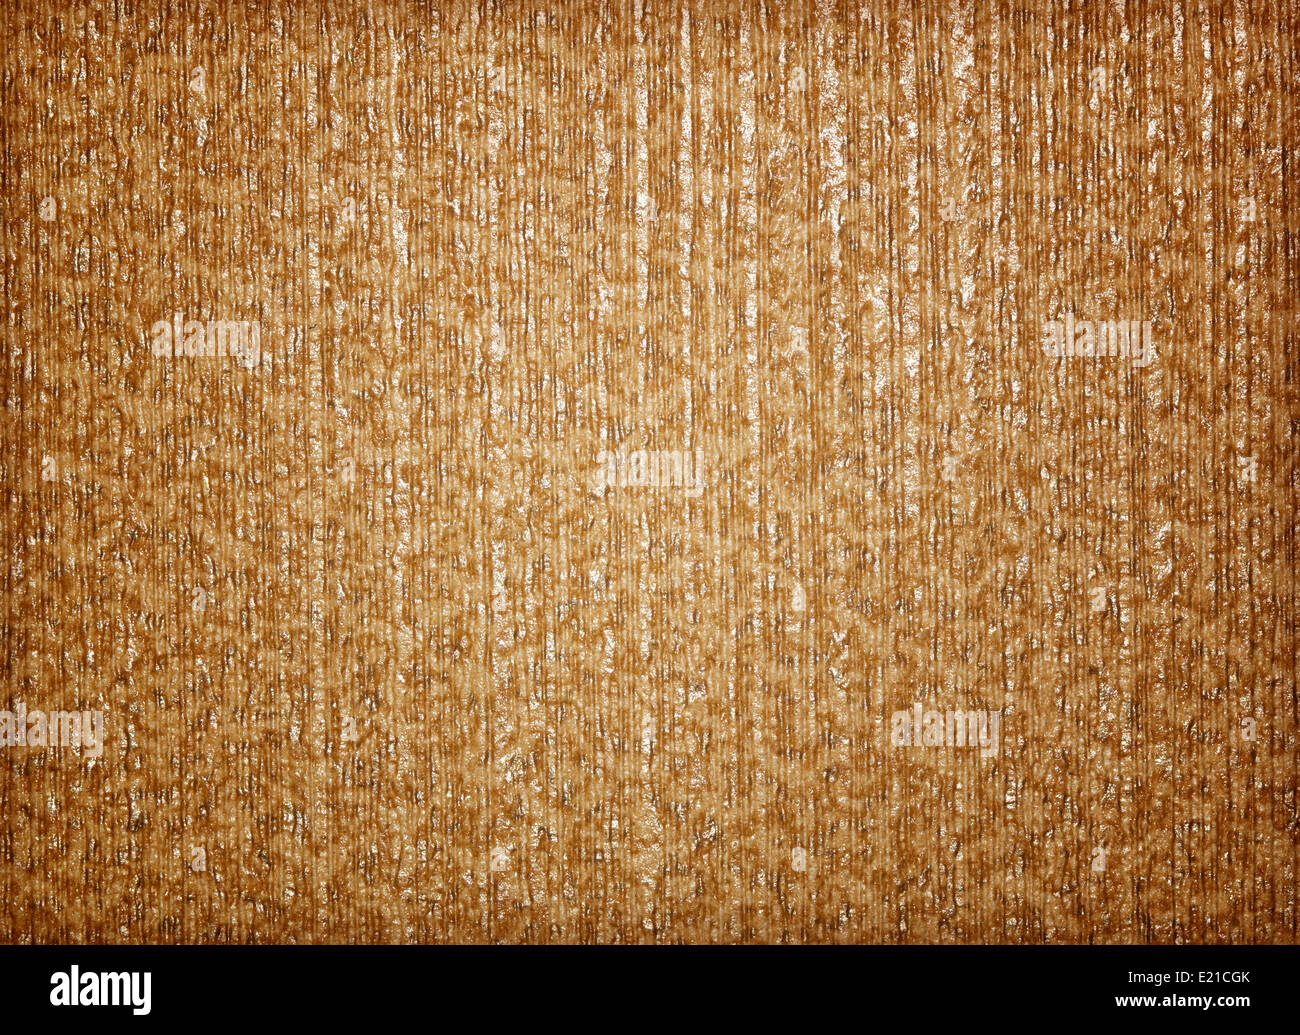 Wallpaper Vintage Shabby Background With Classy Patterns Stock Photo